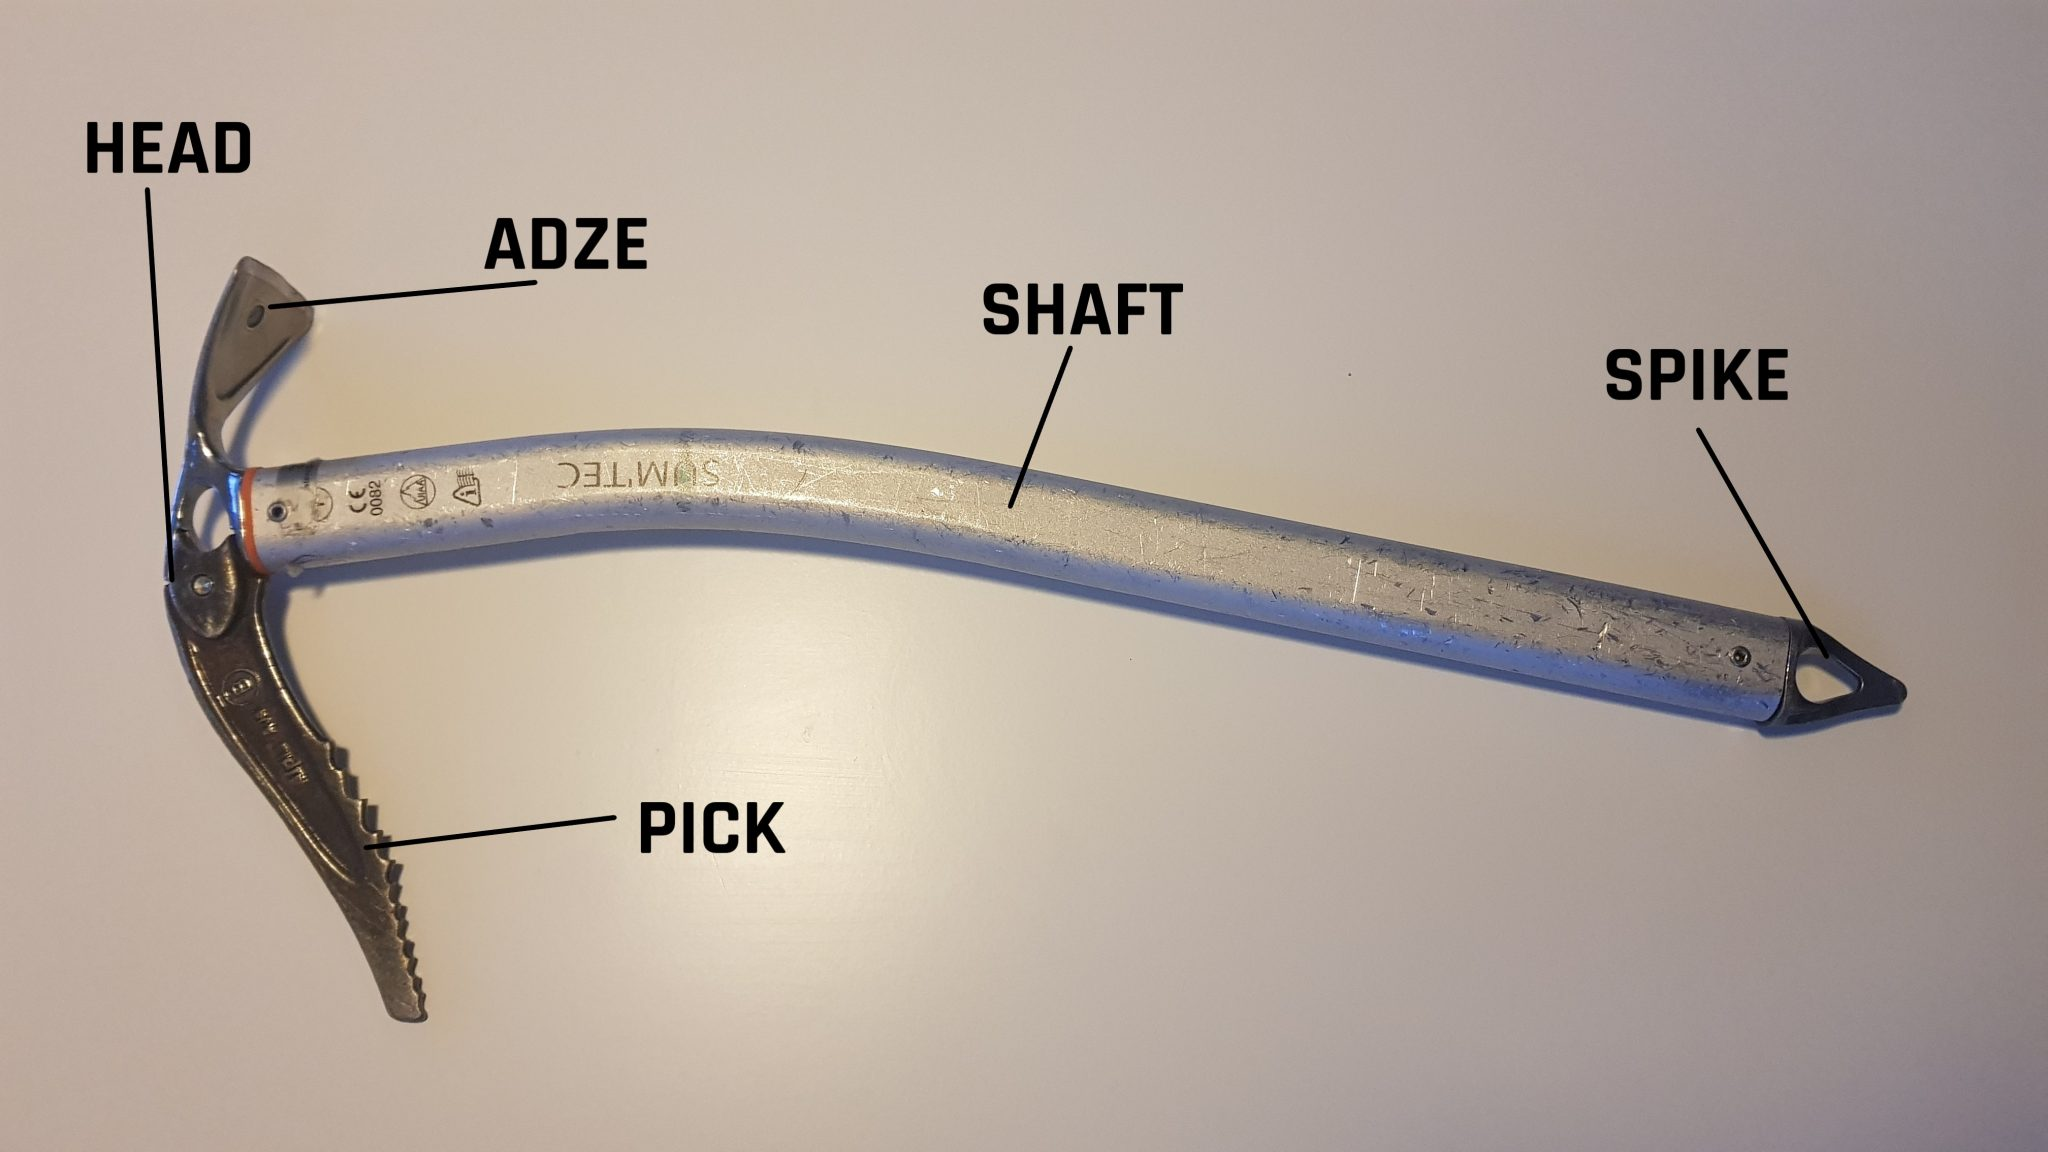 How to choose an ice axe